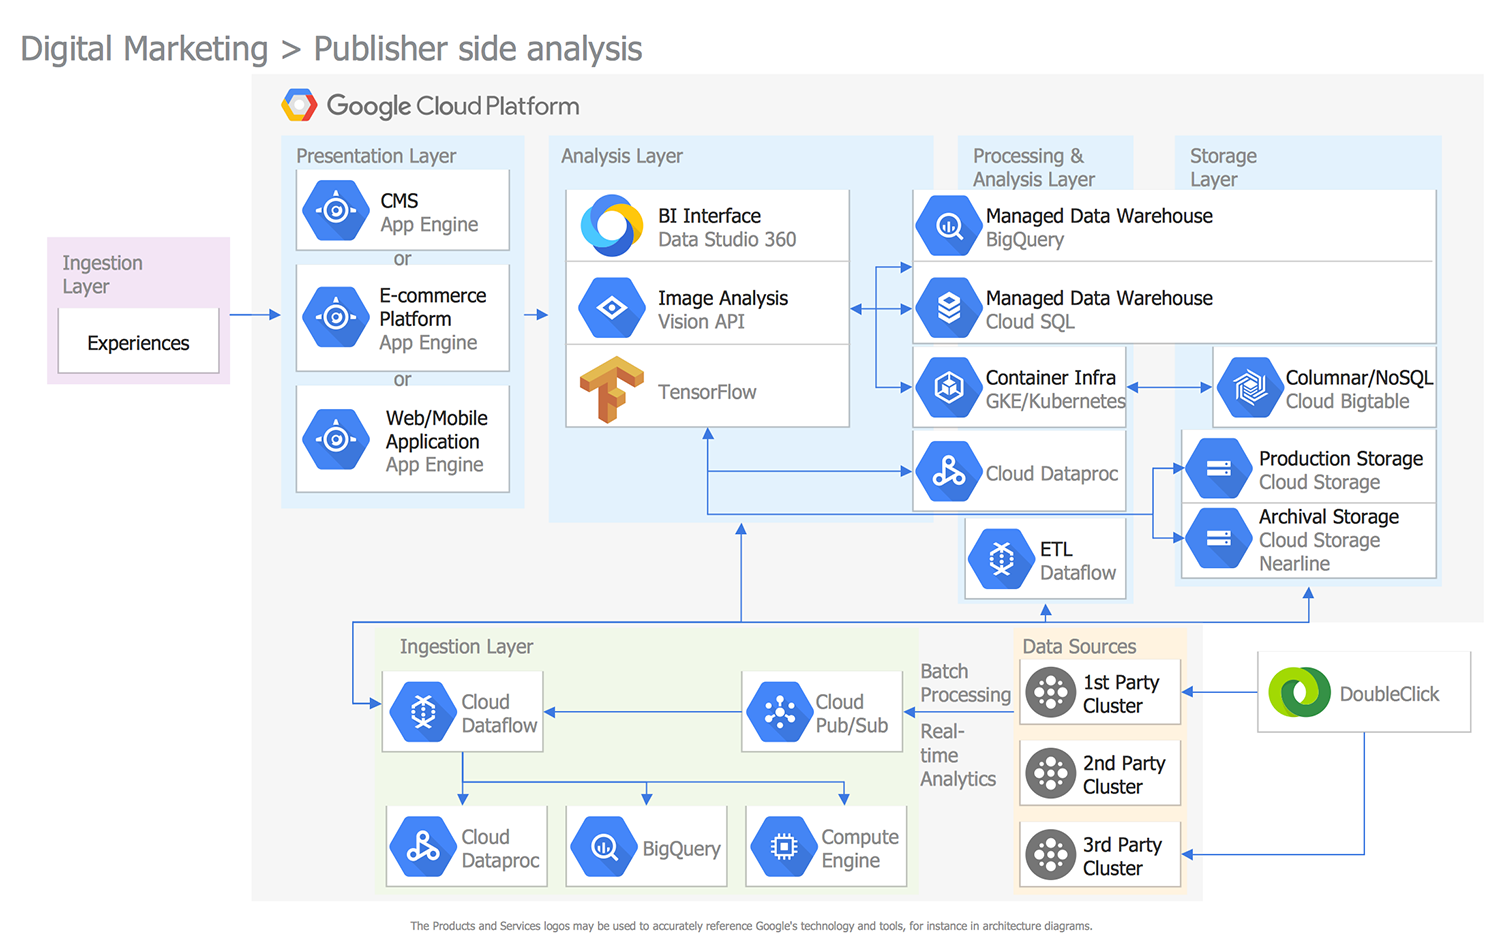 Digital Marketing Publisher Side Analysis